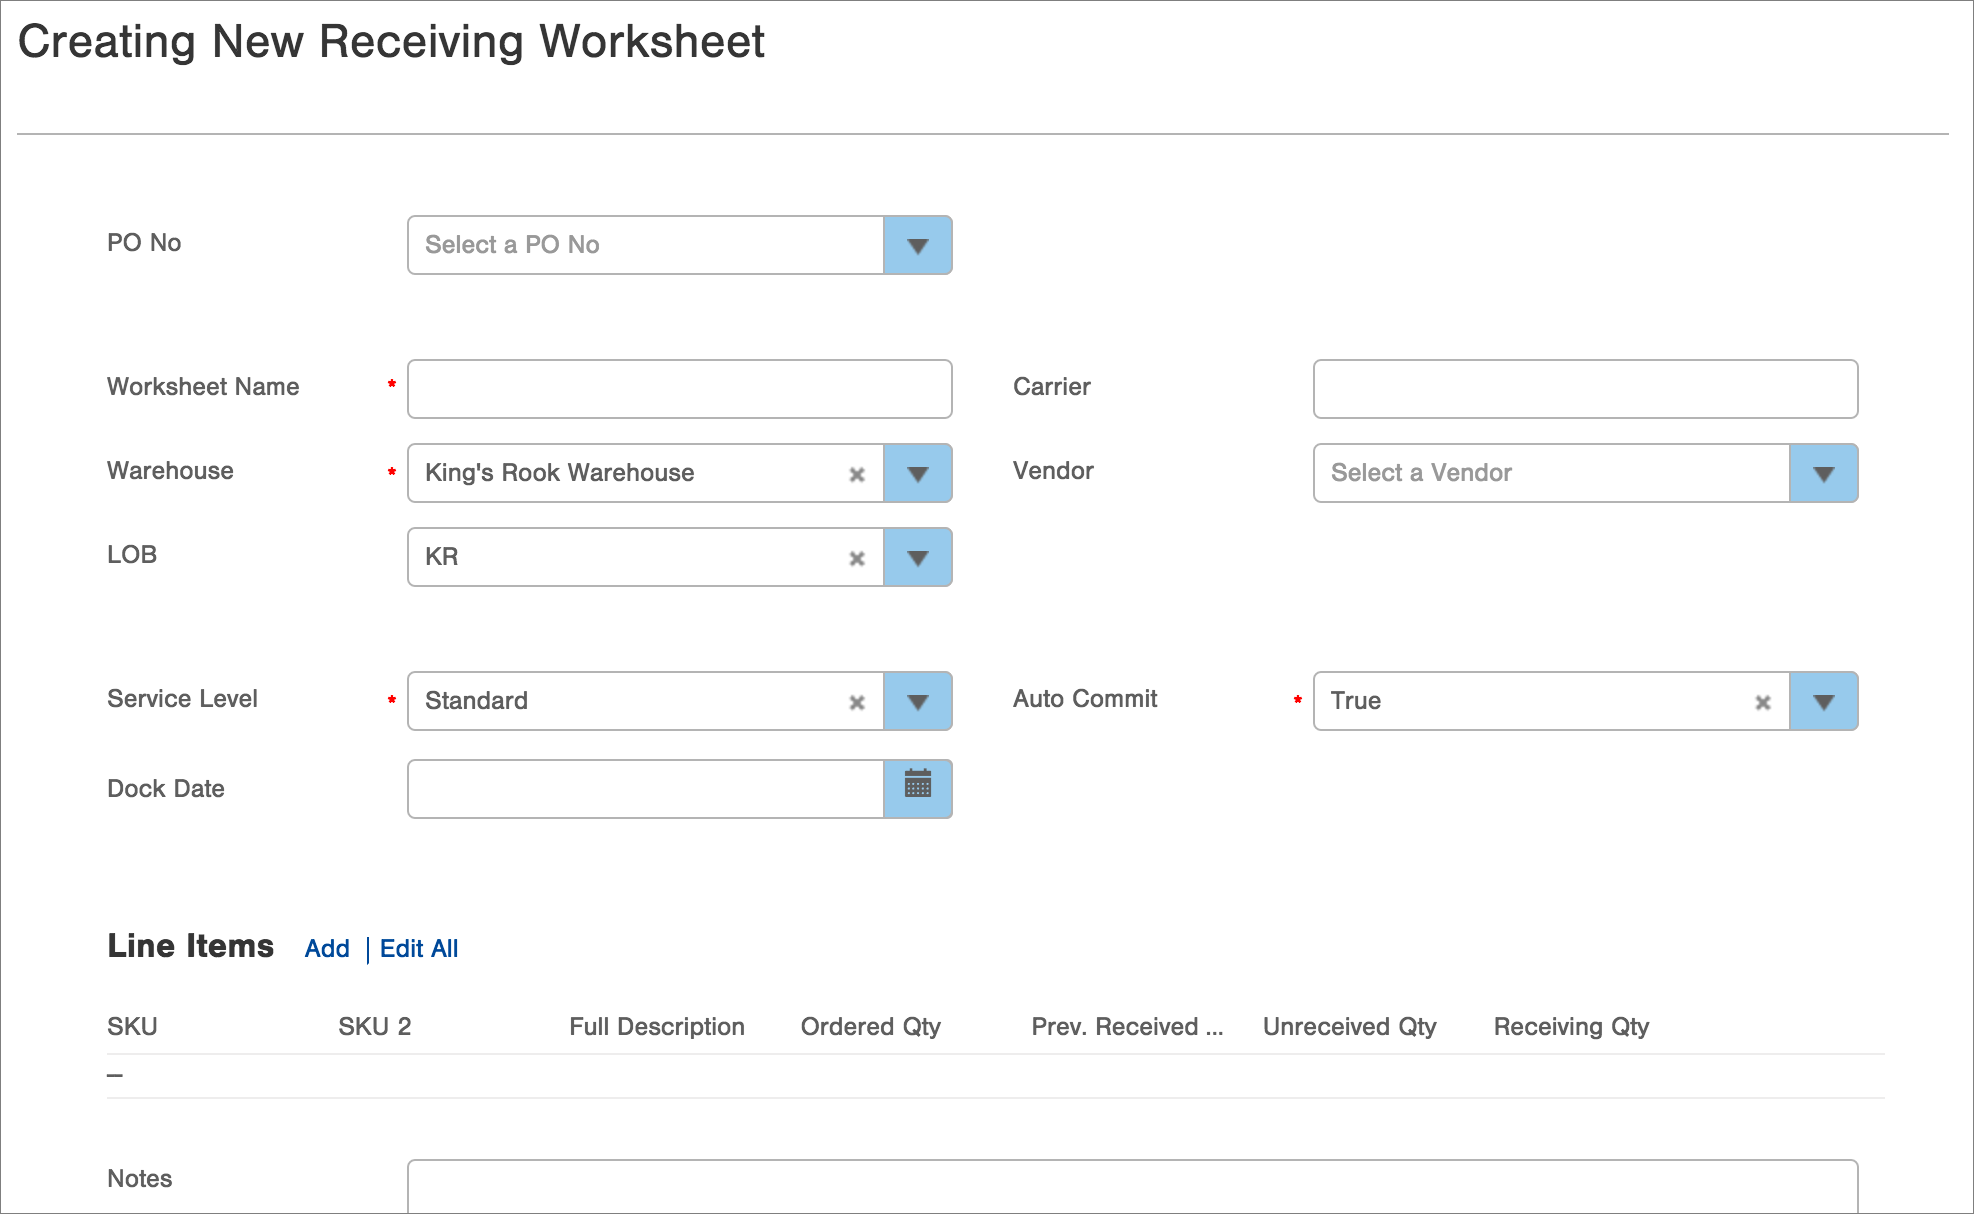 Receiving worksheets can be created